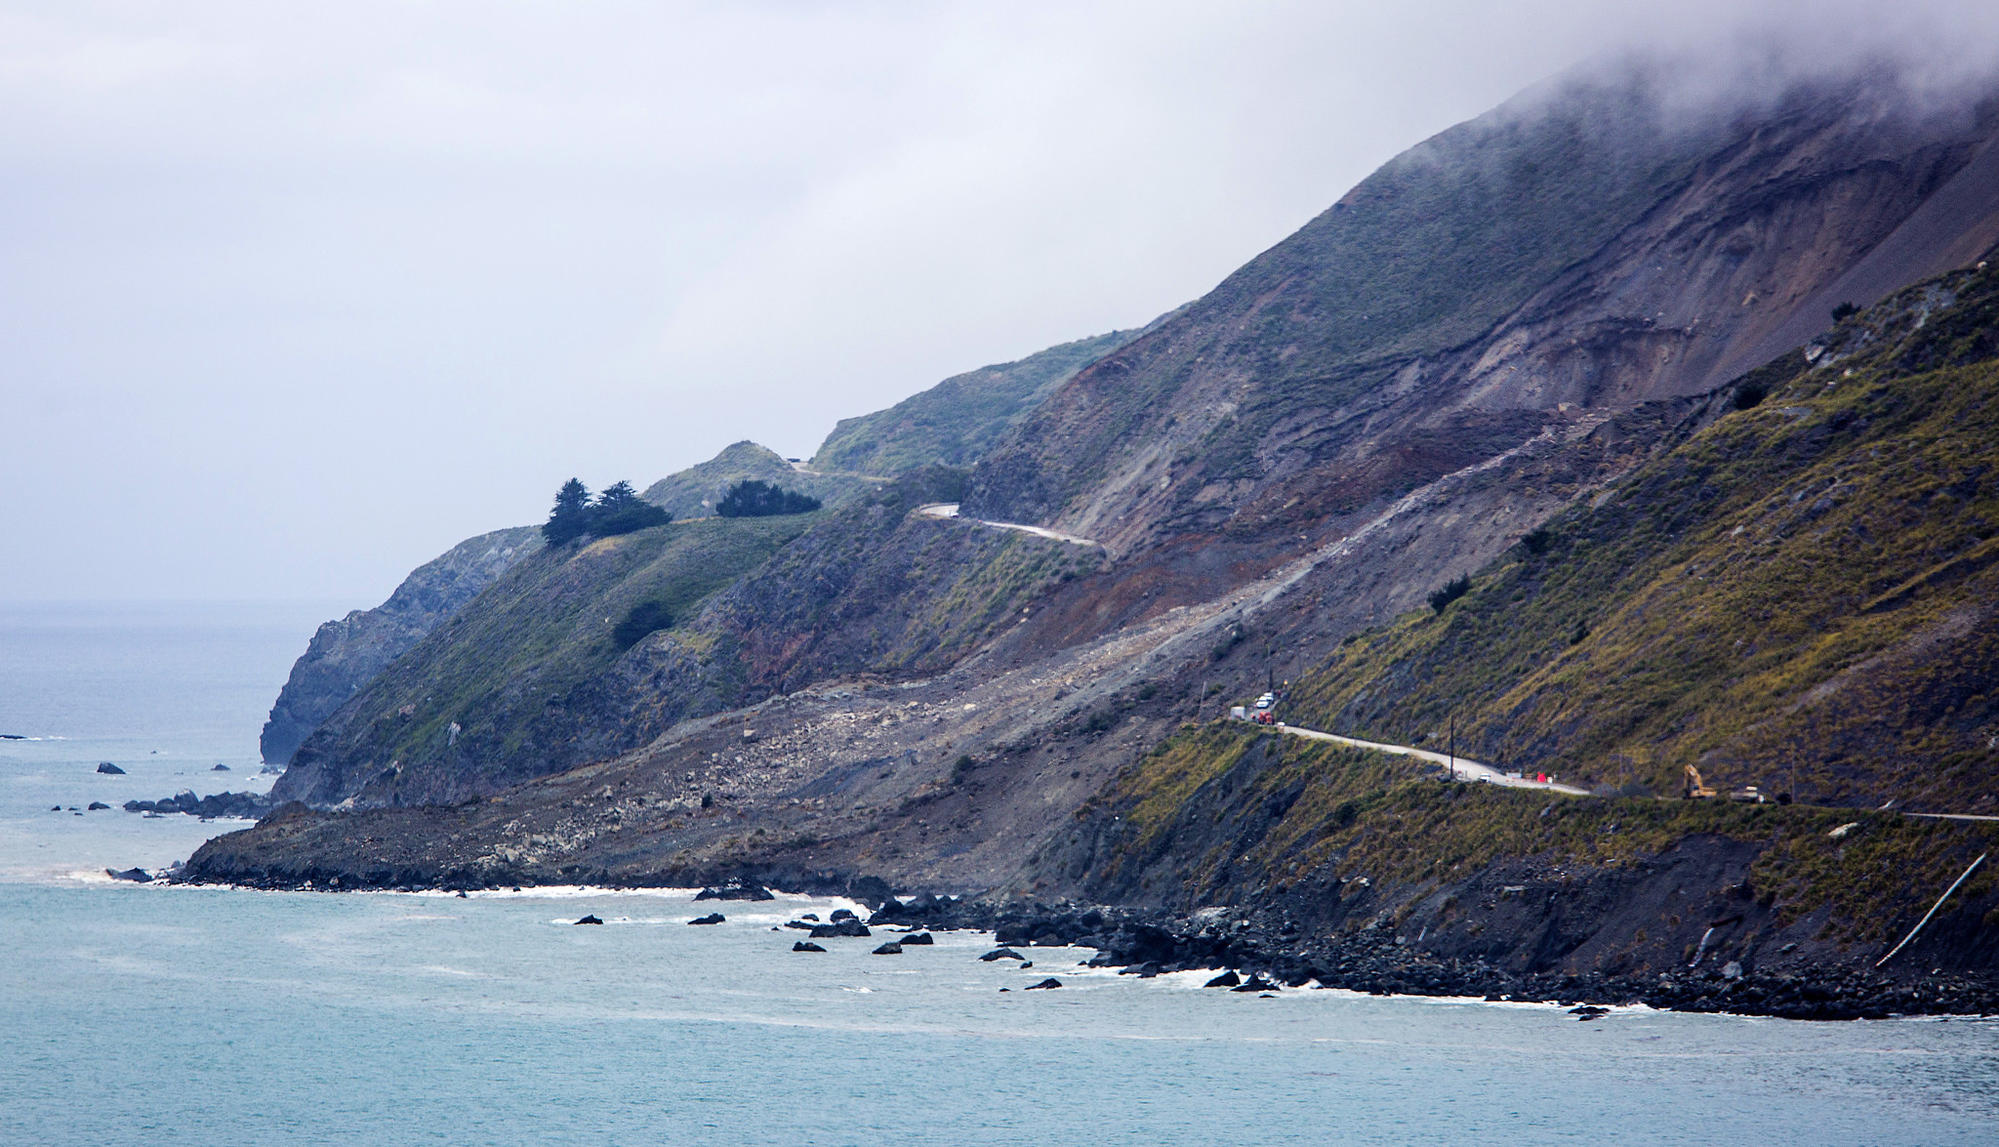 Highway 1 is cut in two where a massive landslide obliterated the road north of Ragged Point.